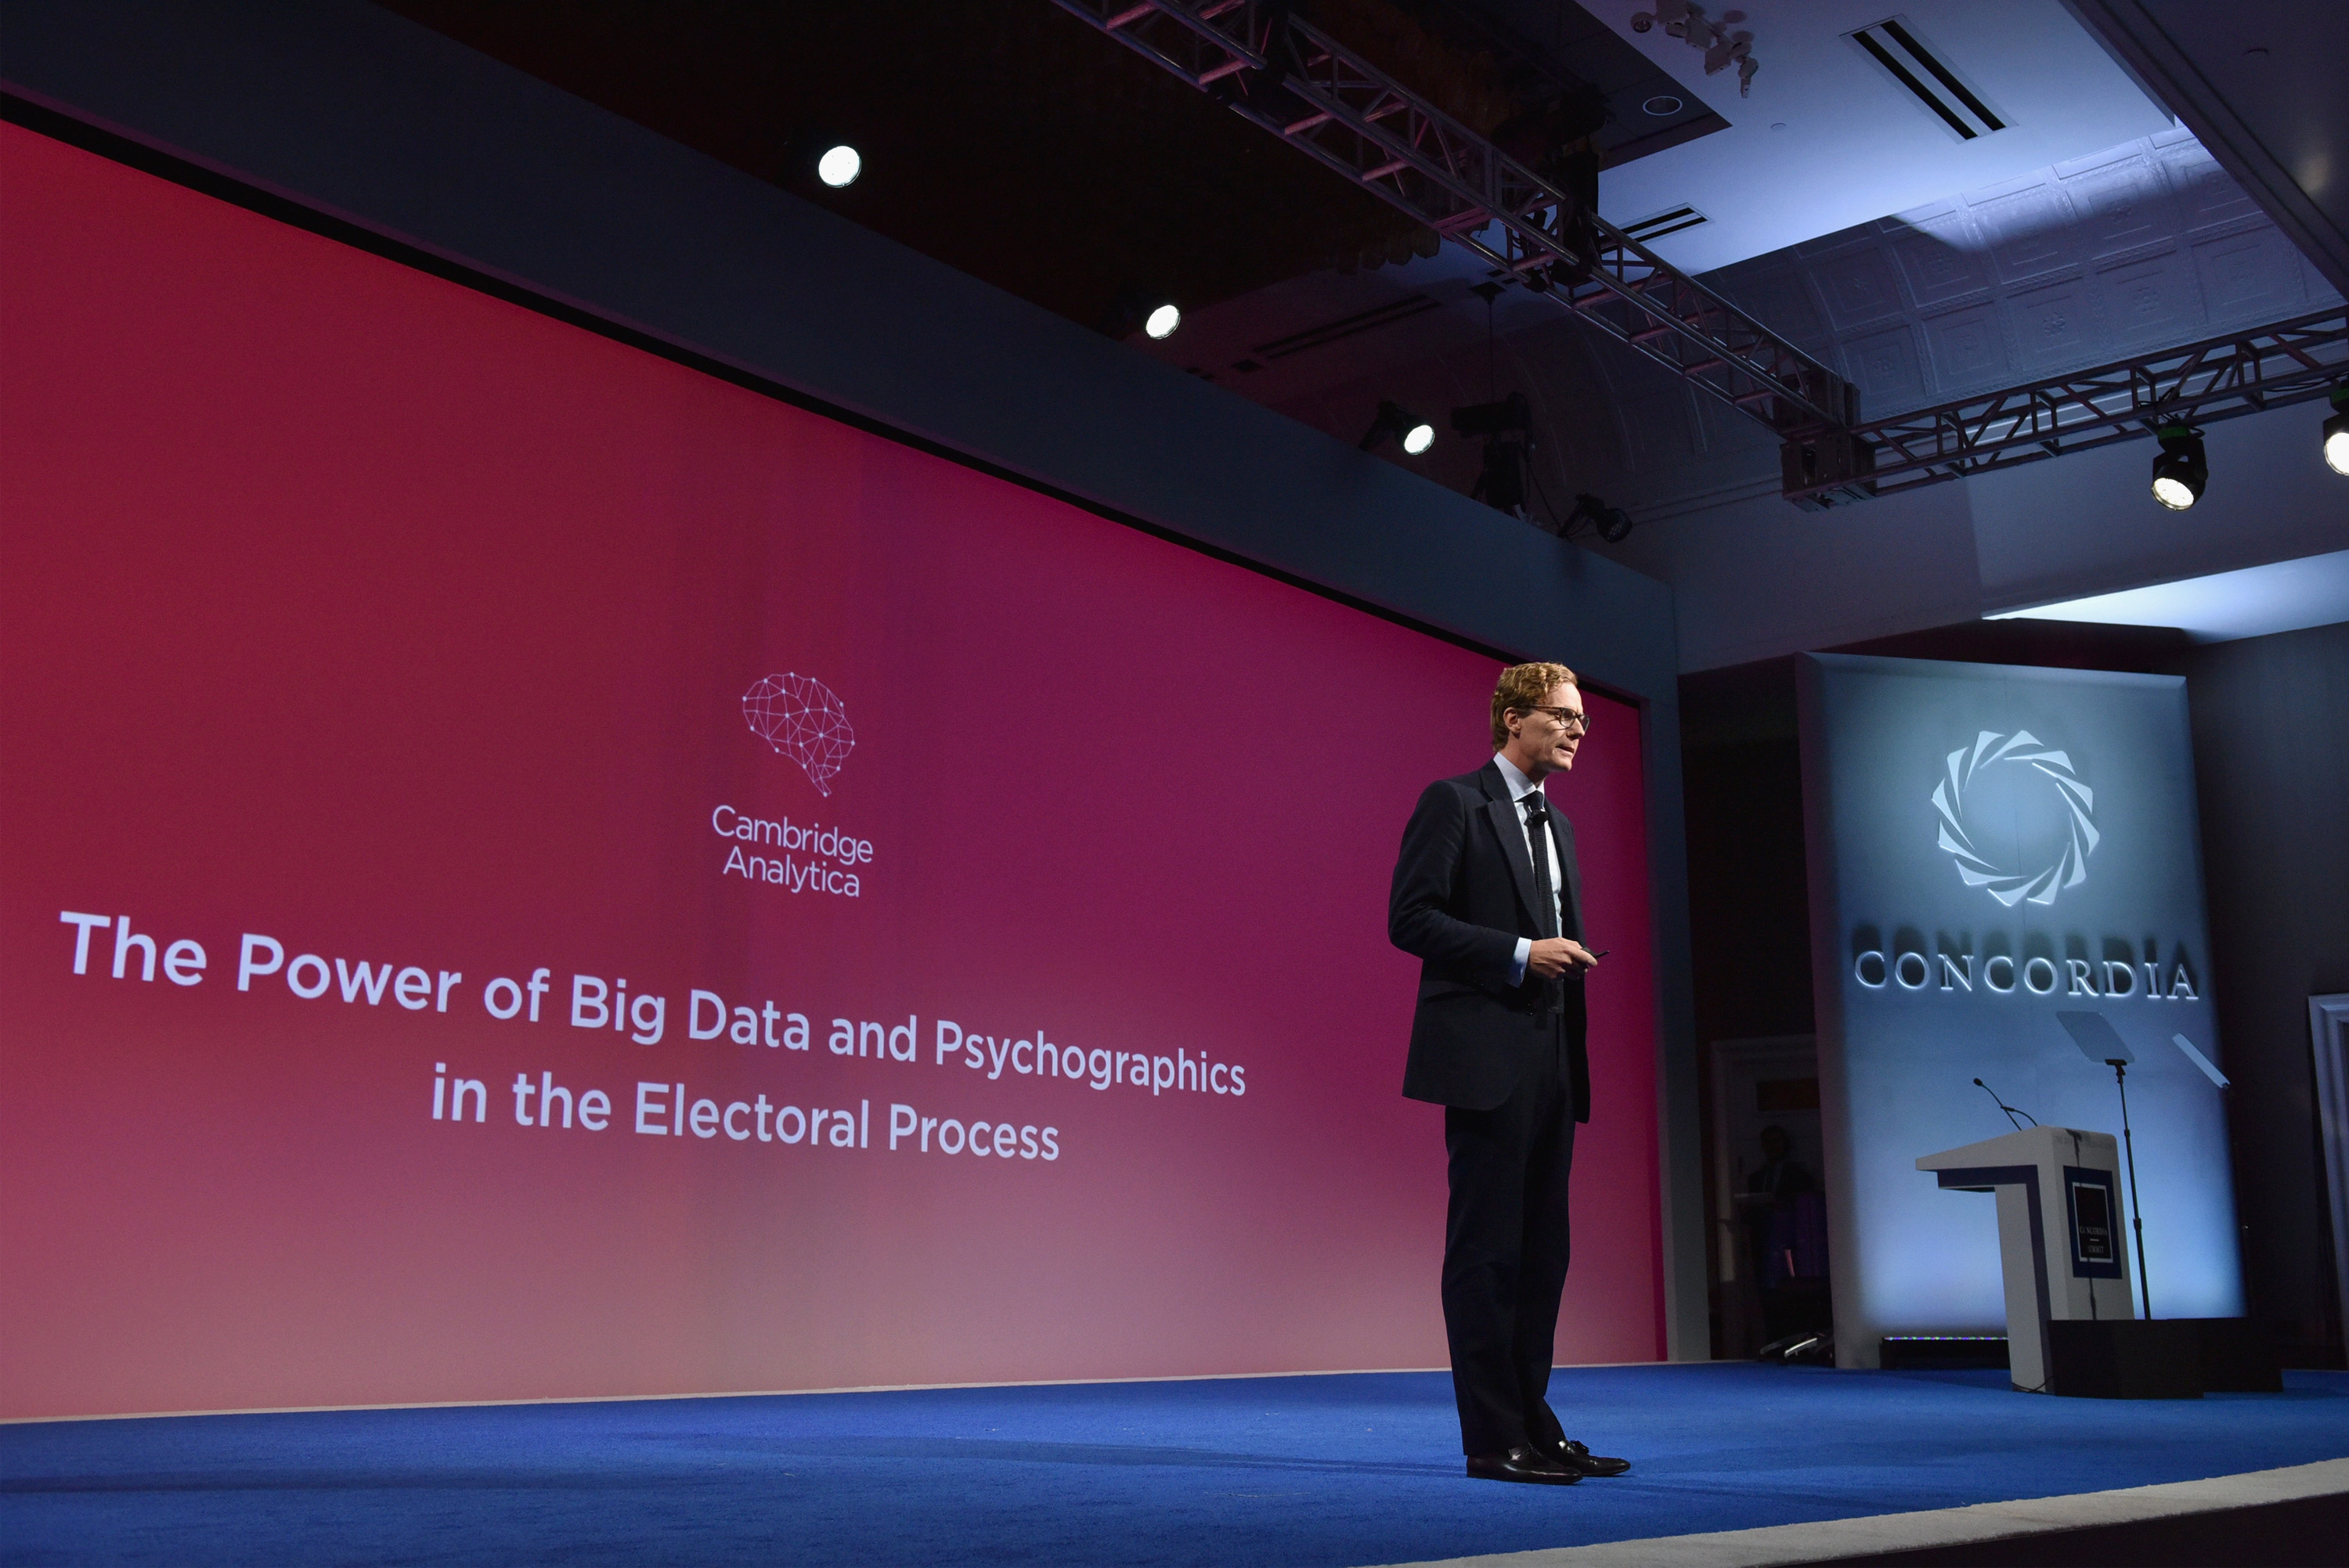 Cambridge Analytica Shutting Down The Firms Many Scandals